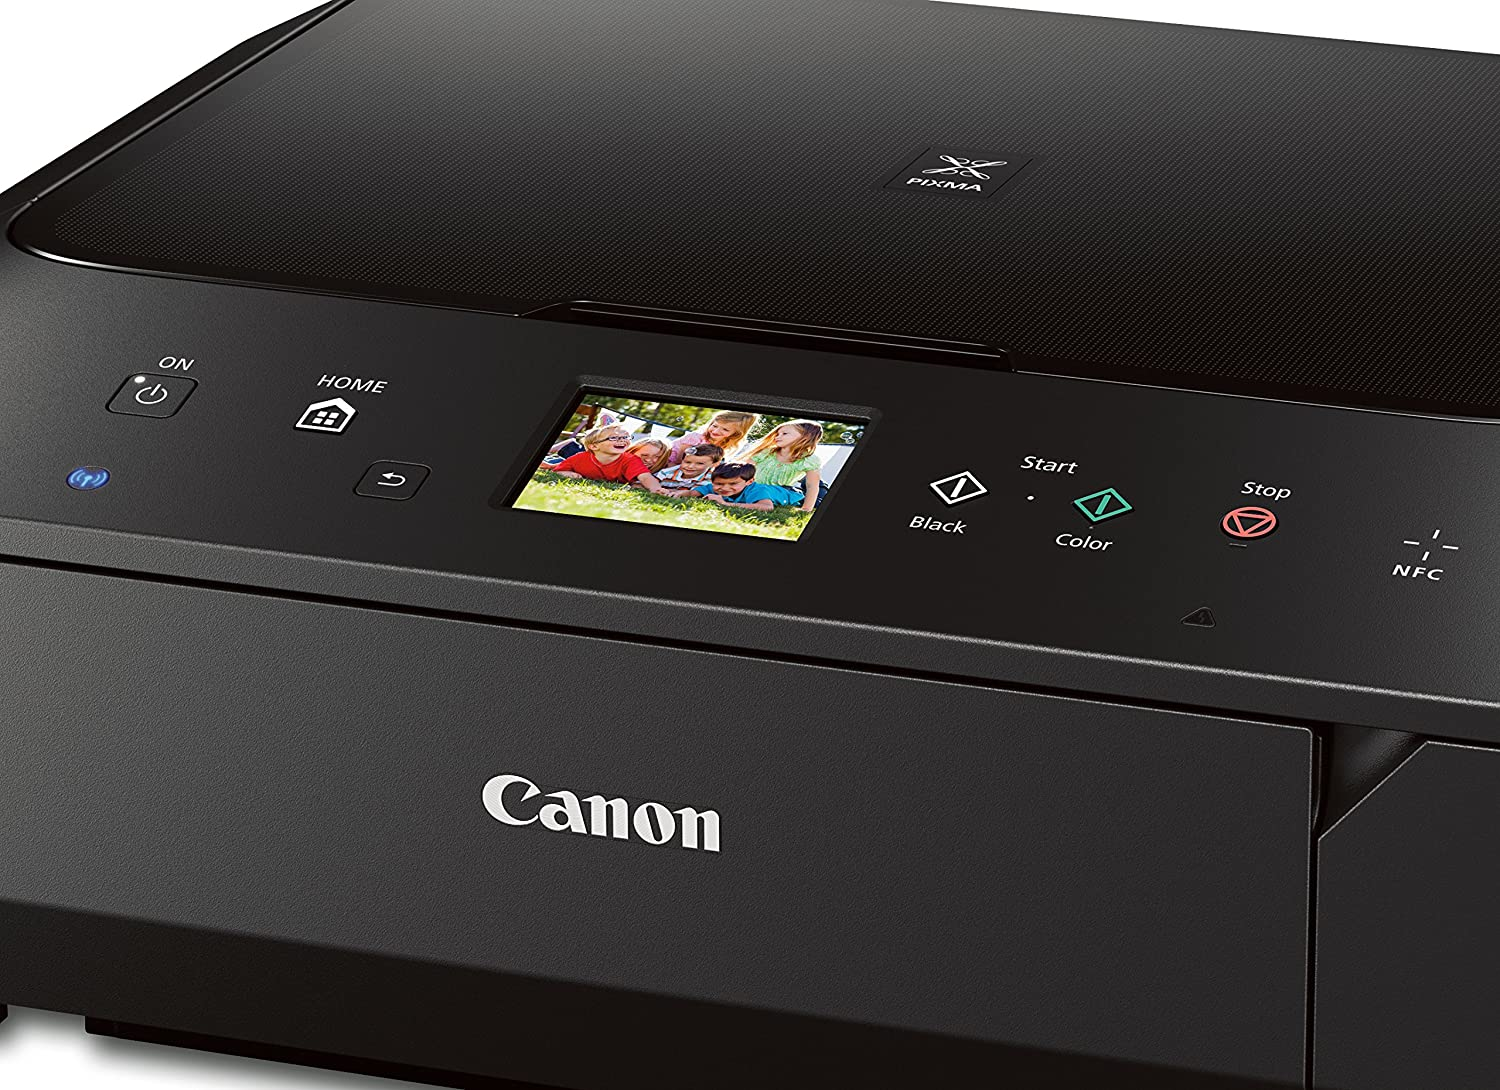 Color printer wireless - Amazon Com Canon Pixma Mg6620 Wireless All In One Color Cloud Printer Mobile Smart Phone Tablet Printing And Airprint Tm Compatible Black Electronics